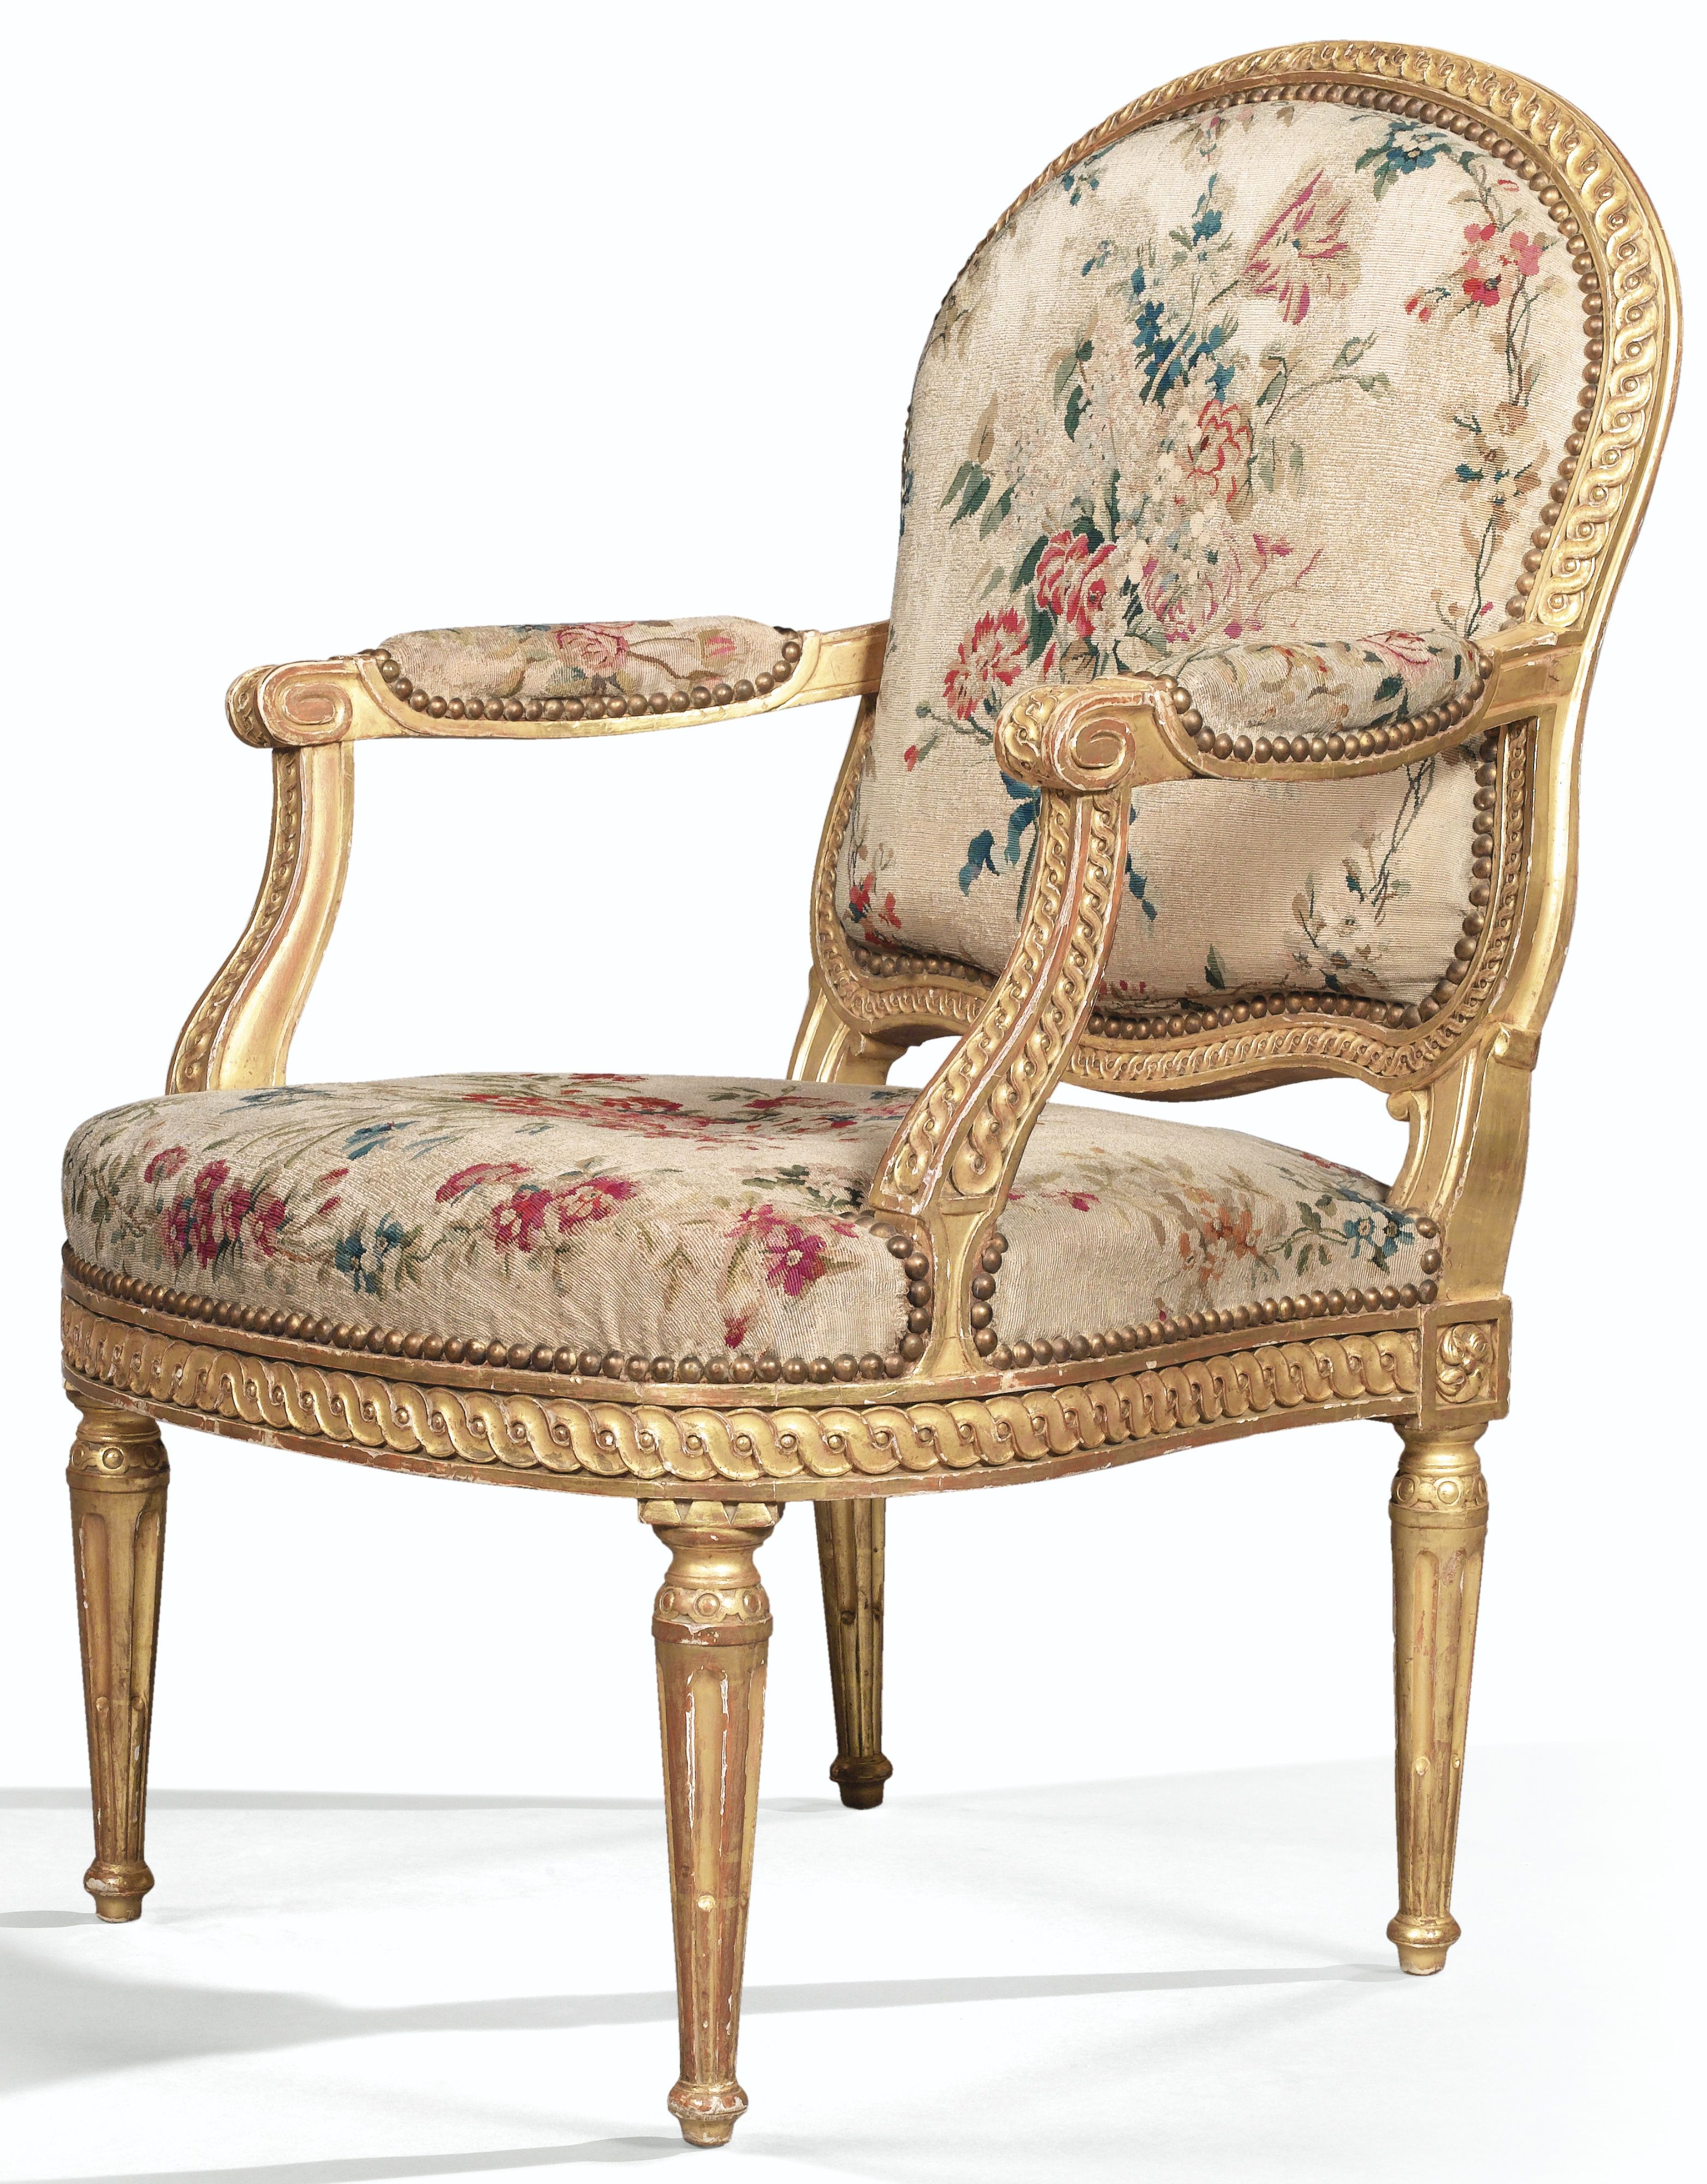 A Set Of Six Giltwood Armchairs And A Sofa Louis Xv Attributed To Louis Charles Carpentier Circa 17 Fauteuil Louis Xvi Meubles Victoriens Mobilier De France